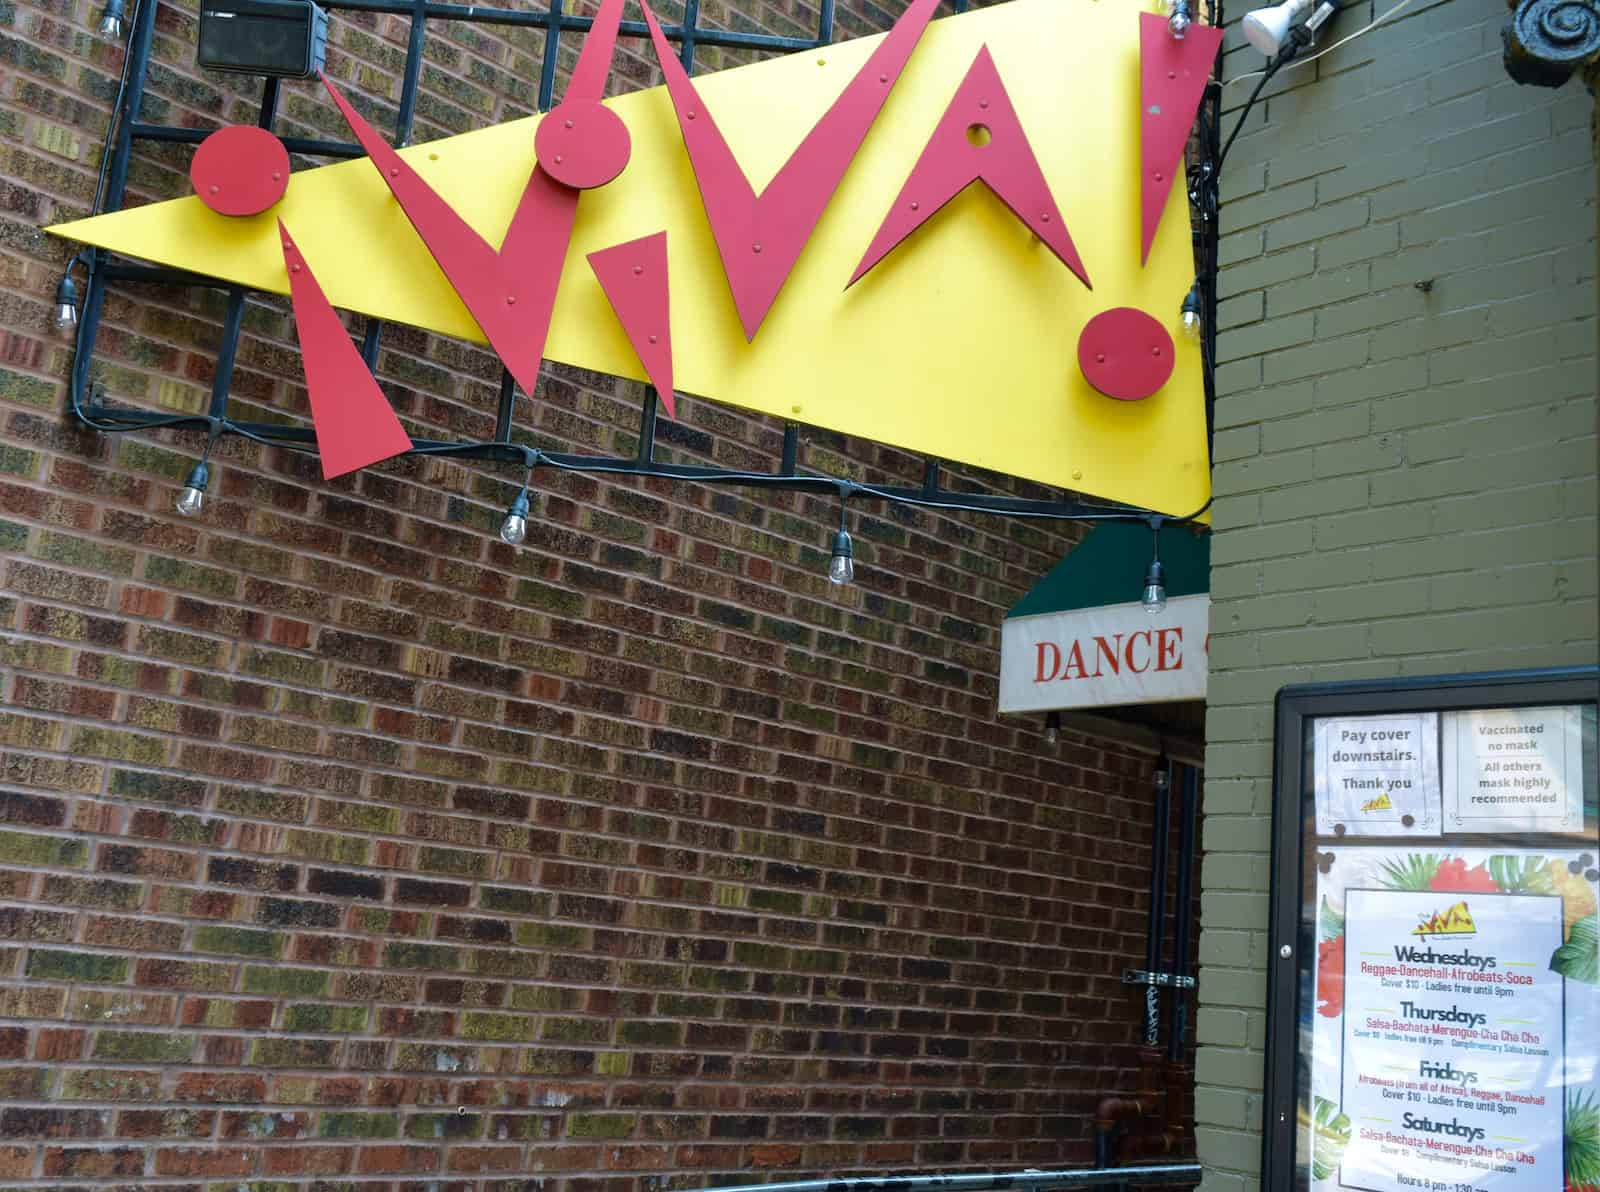 Viva in the Central West End in St. Louis, MO